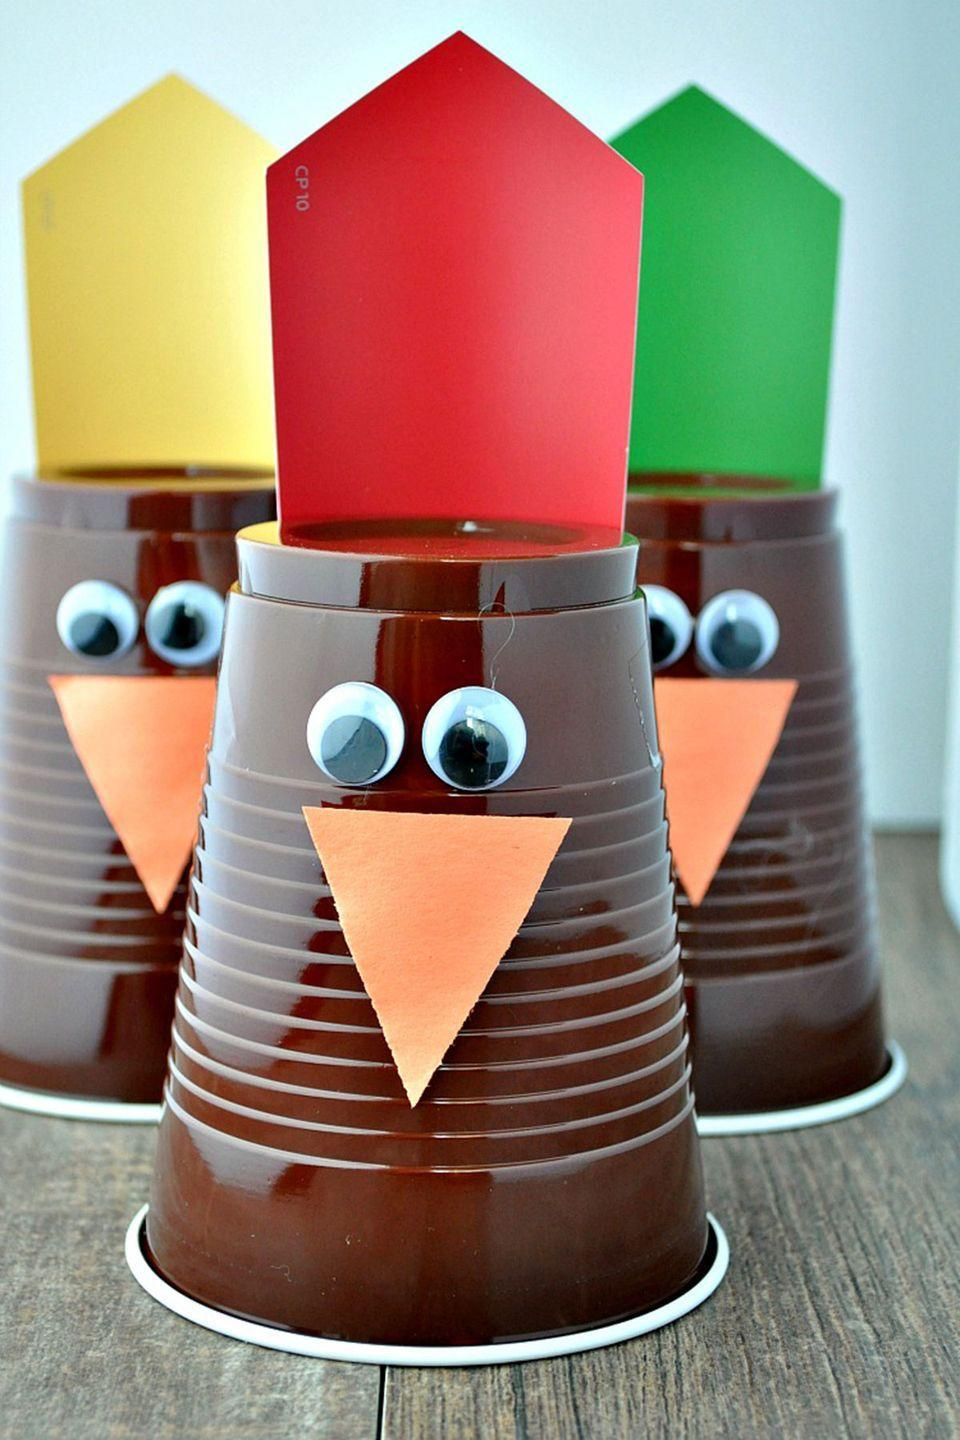 """<p>Use mini pumpkins to knock over as many turkeys as you can! </p><p><strong>Get the tutorial at <a href=""""http://www.theseasonedmom.com/thanksgiving-game-turkey-bowling/"""" rel=""""nofollow noopener"""" target=""""_blank"""" data-ylk=""""slk:The Seasoned Mom"""" class=""""link rapid-noclick-resp"""">The Seasoned Mom</a>.</strong></p><p><a class=""""link rapid-noclick-resp"""" href=""""https://www.amazon.com/Amscan-Party-Plastic-16-Ounce-Chocolate/dp/B004UPYM00/?tag=syn-yahoo-20&ascsubtag=%5Bartid%7C10050.g.4698%5Bsrc%7Cyahoo-us"""" rel=""""nofollow noopener"""" target=""""_blank"""" data-ylk=""""slk:SHOP BROWN CUPS"""">SHOP BROWN CUPS</a></p>"""